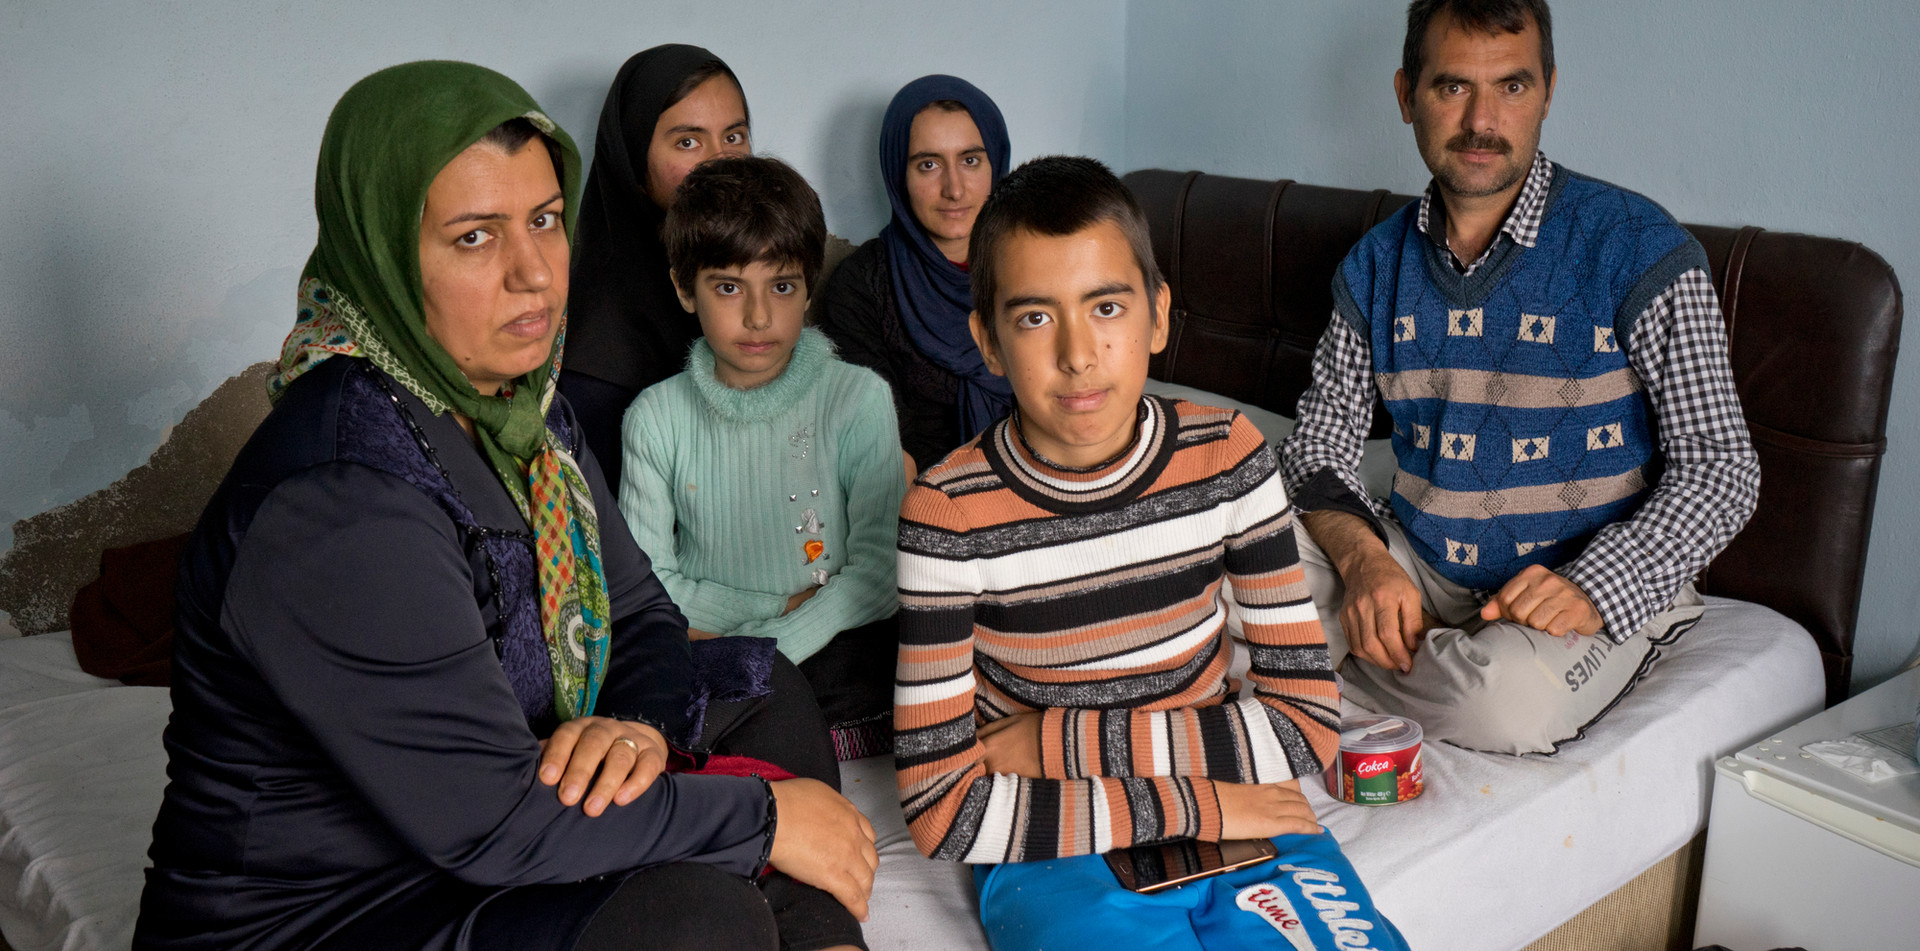 Refugee family from Afghanistan in Turkey